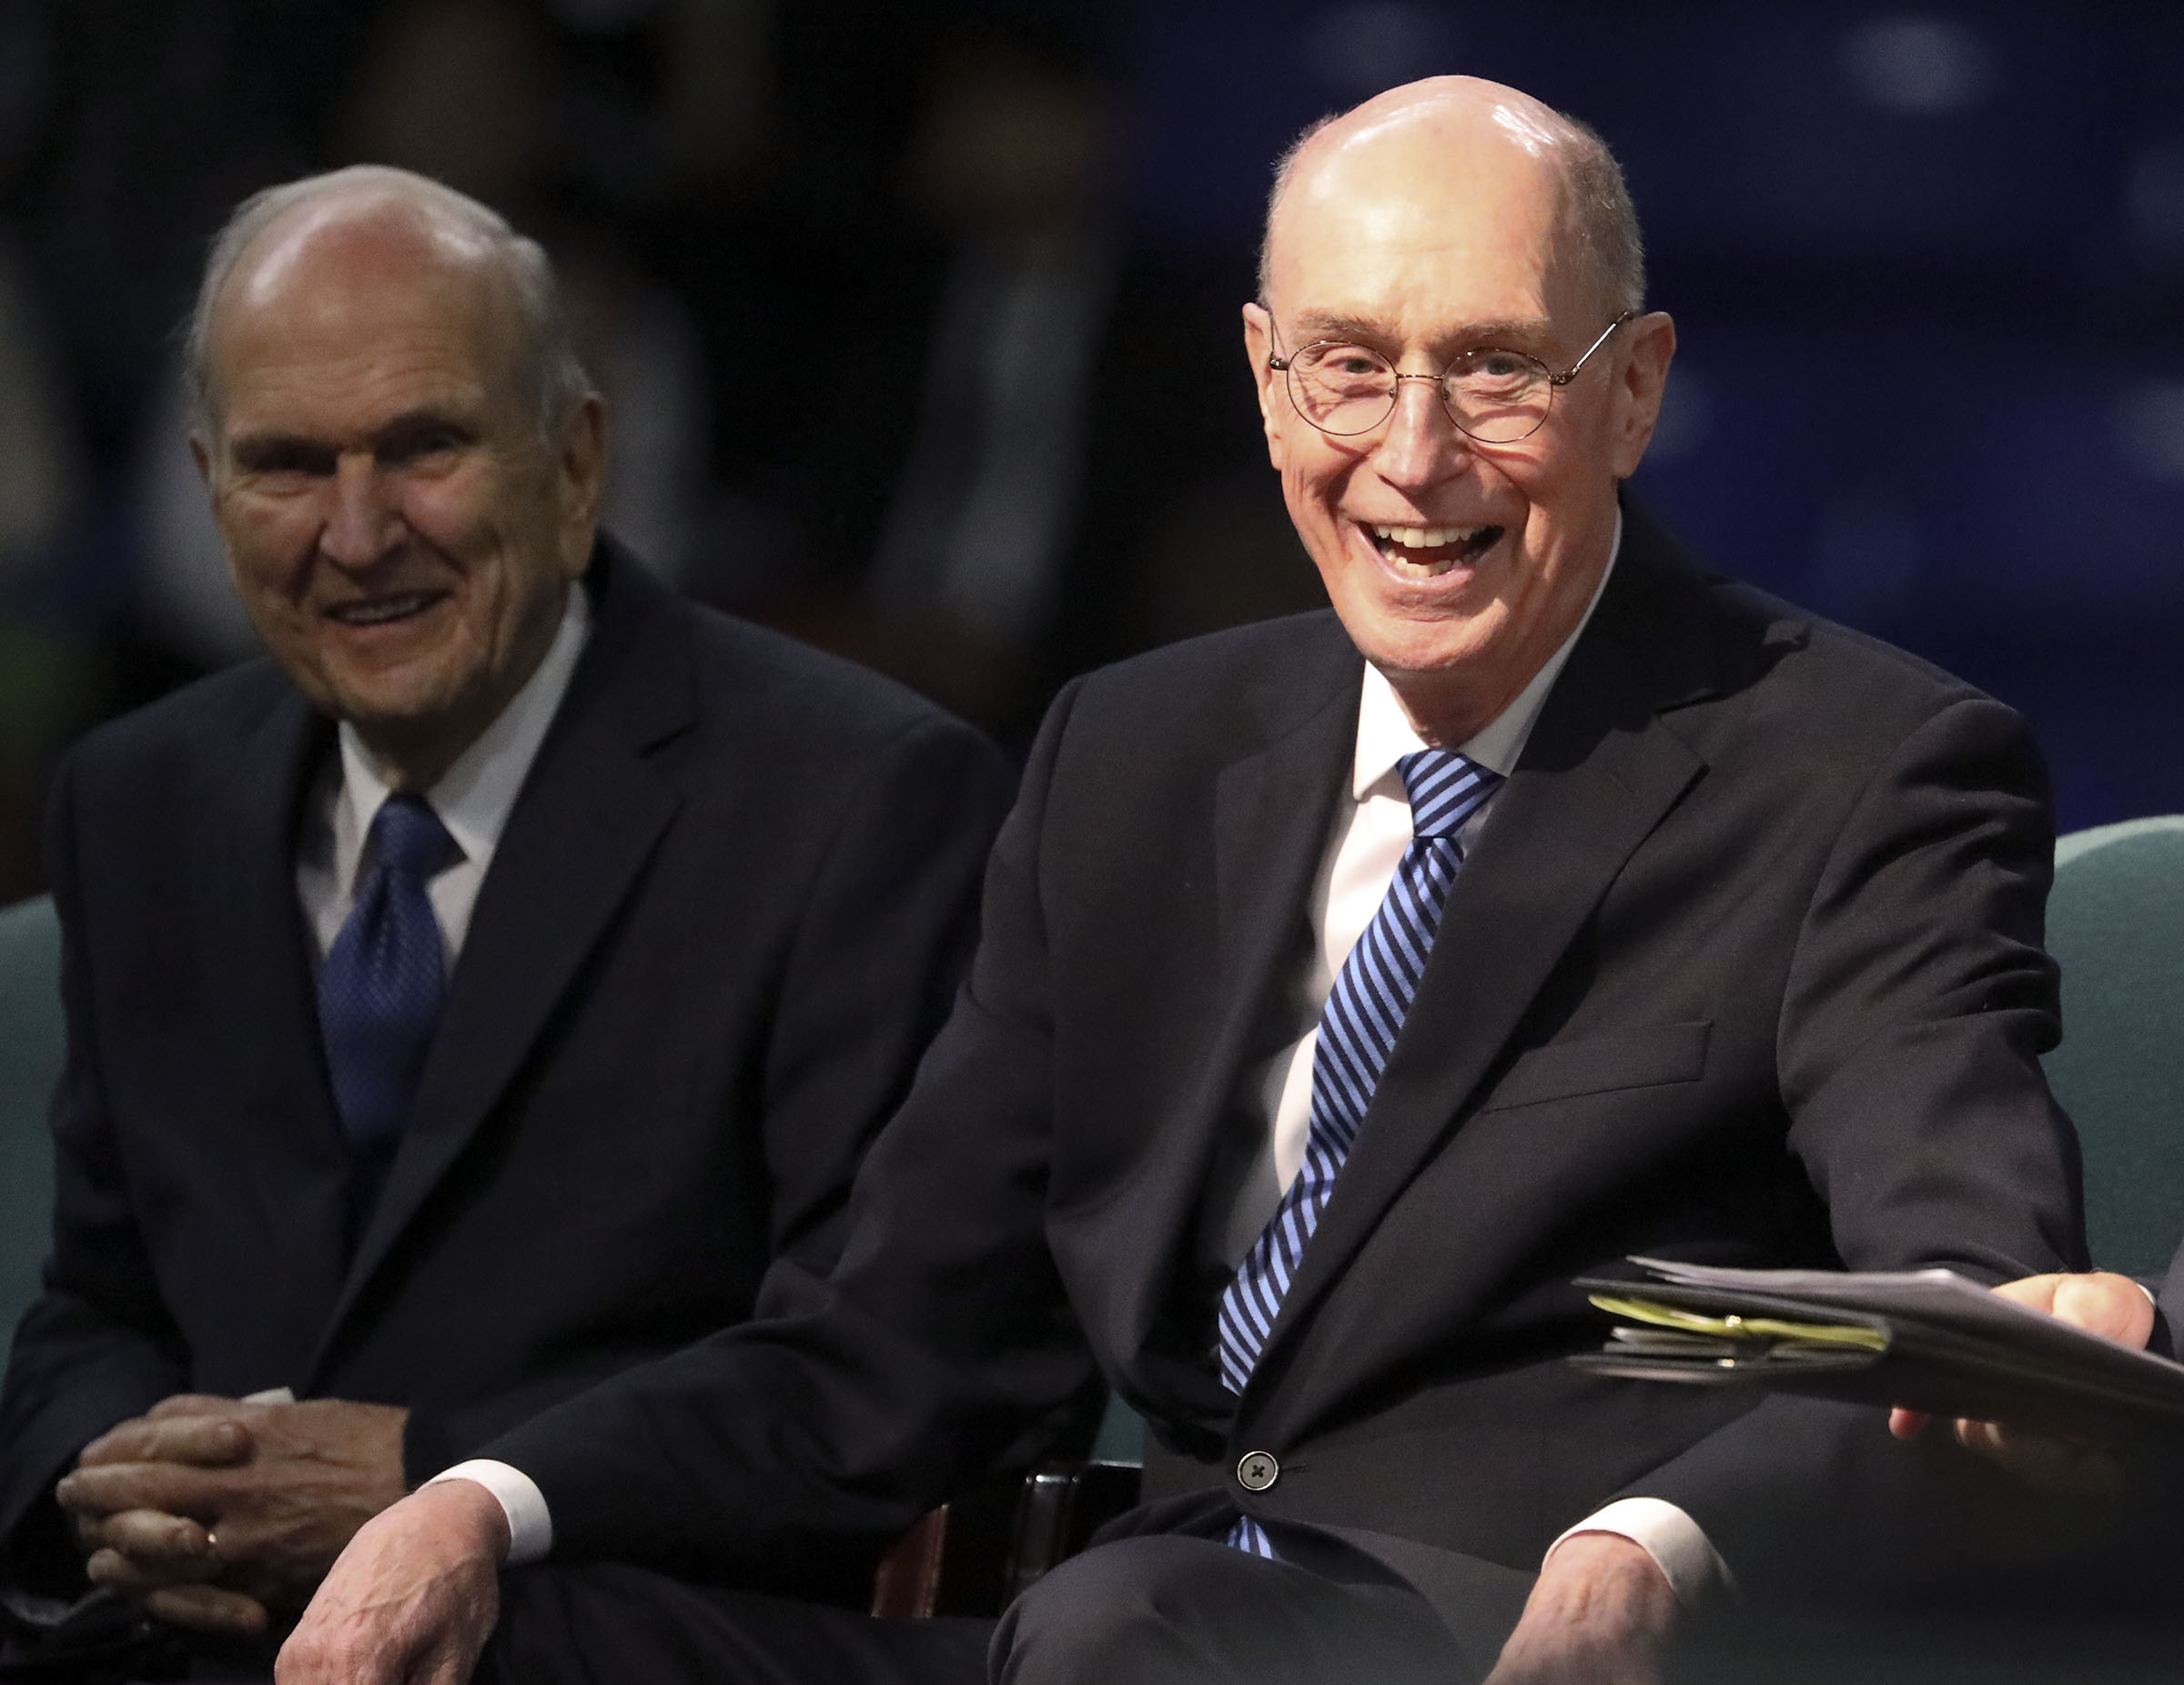 President Henry B. Eyring, second counselor in the First Presidency, laughs while sitting with President Russell M. Nelson of The Church of Jesus Christ of Latter-day Saints at the Langley Events Center in Langley, British Columbia, on Sunday, Sept. 16, 2018.